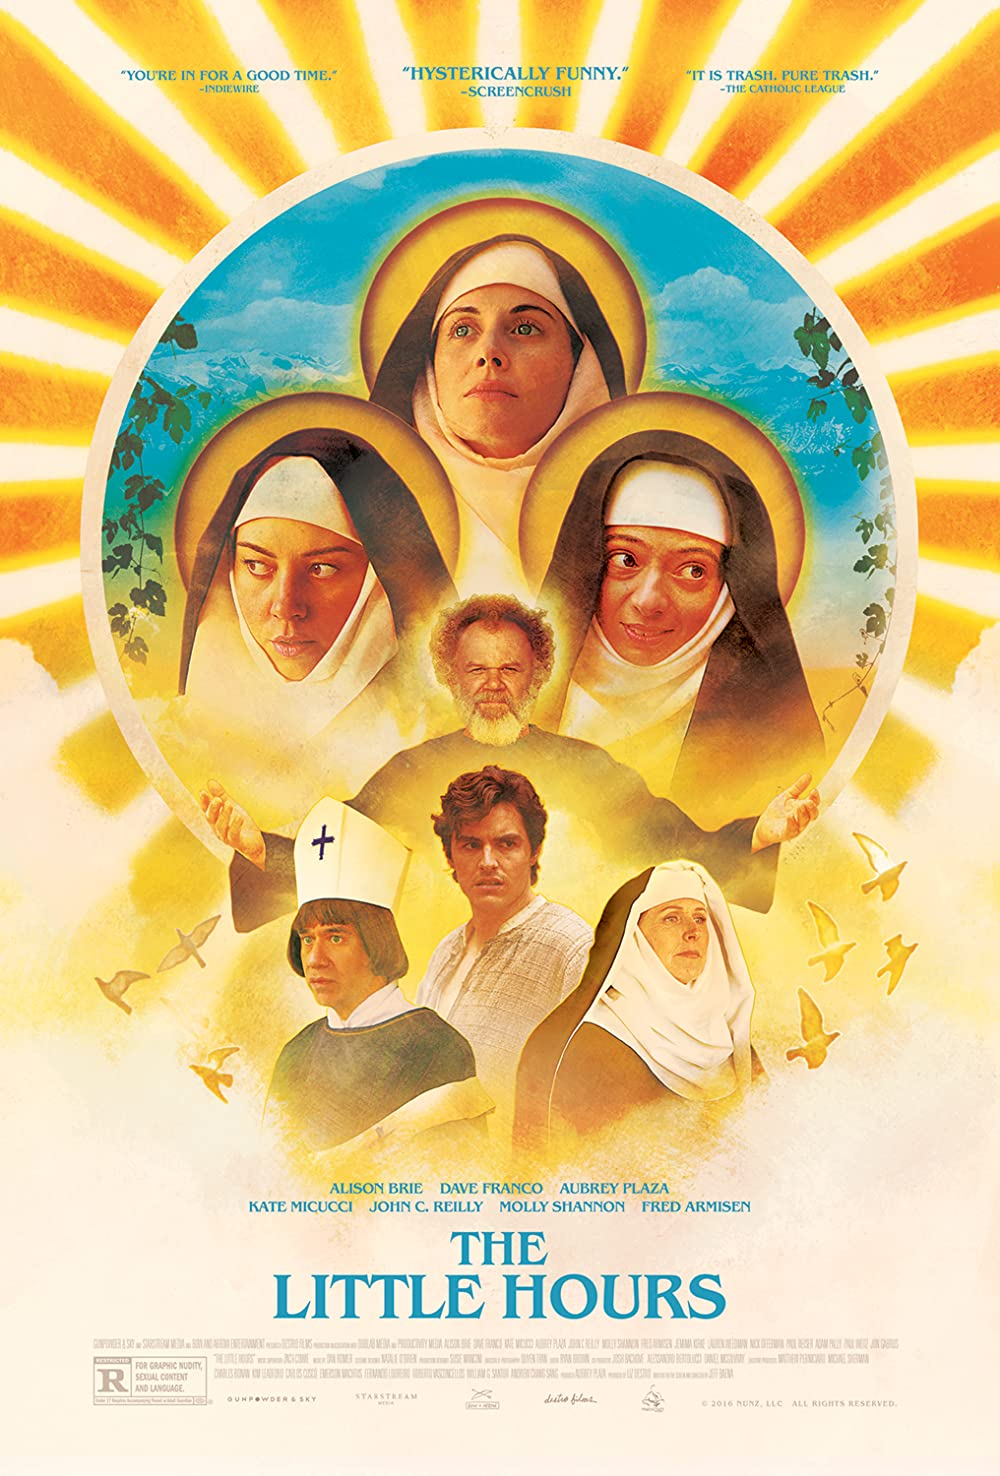 18+ The Little Hours 2017 Hindi ORG Dual Audio 720p BluRay 700MB x264 AAC